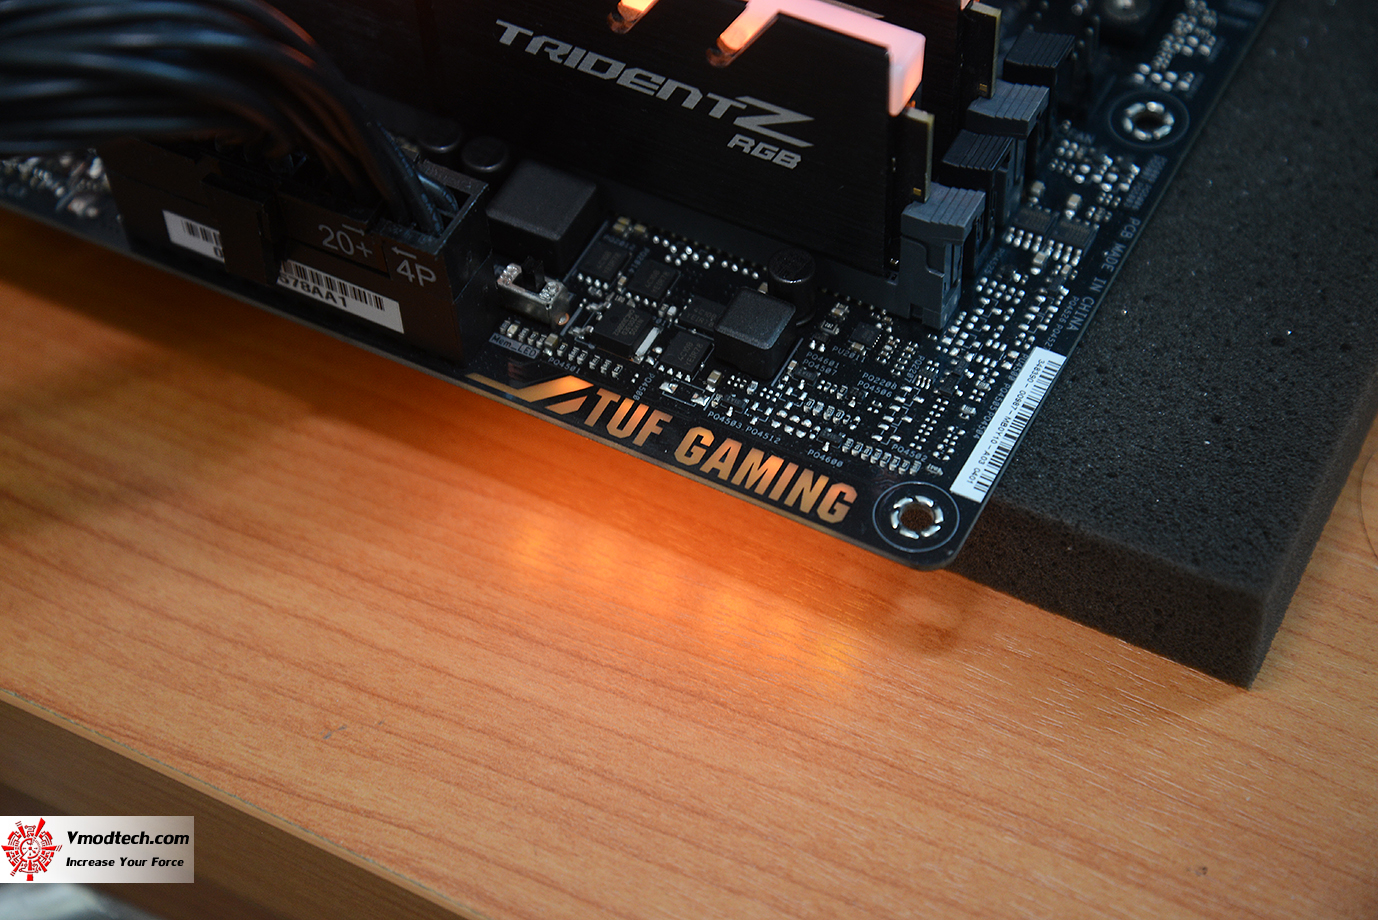 dsc 3312 ASUS TUF Z390M PRO GAMING REVIEW